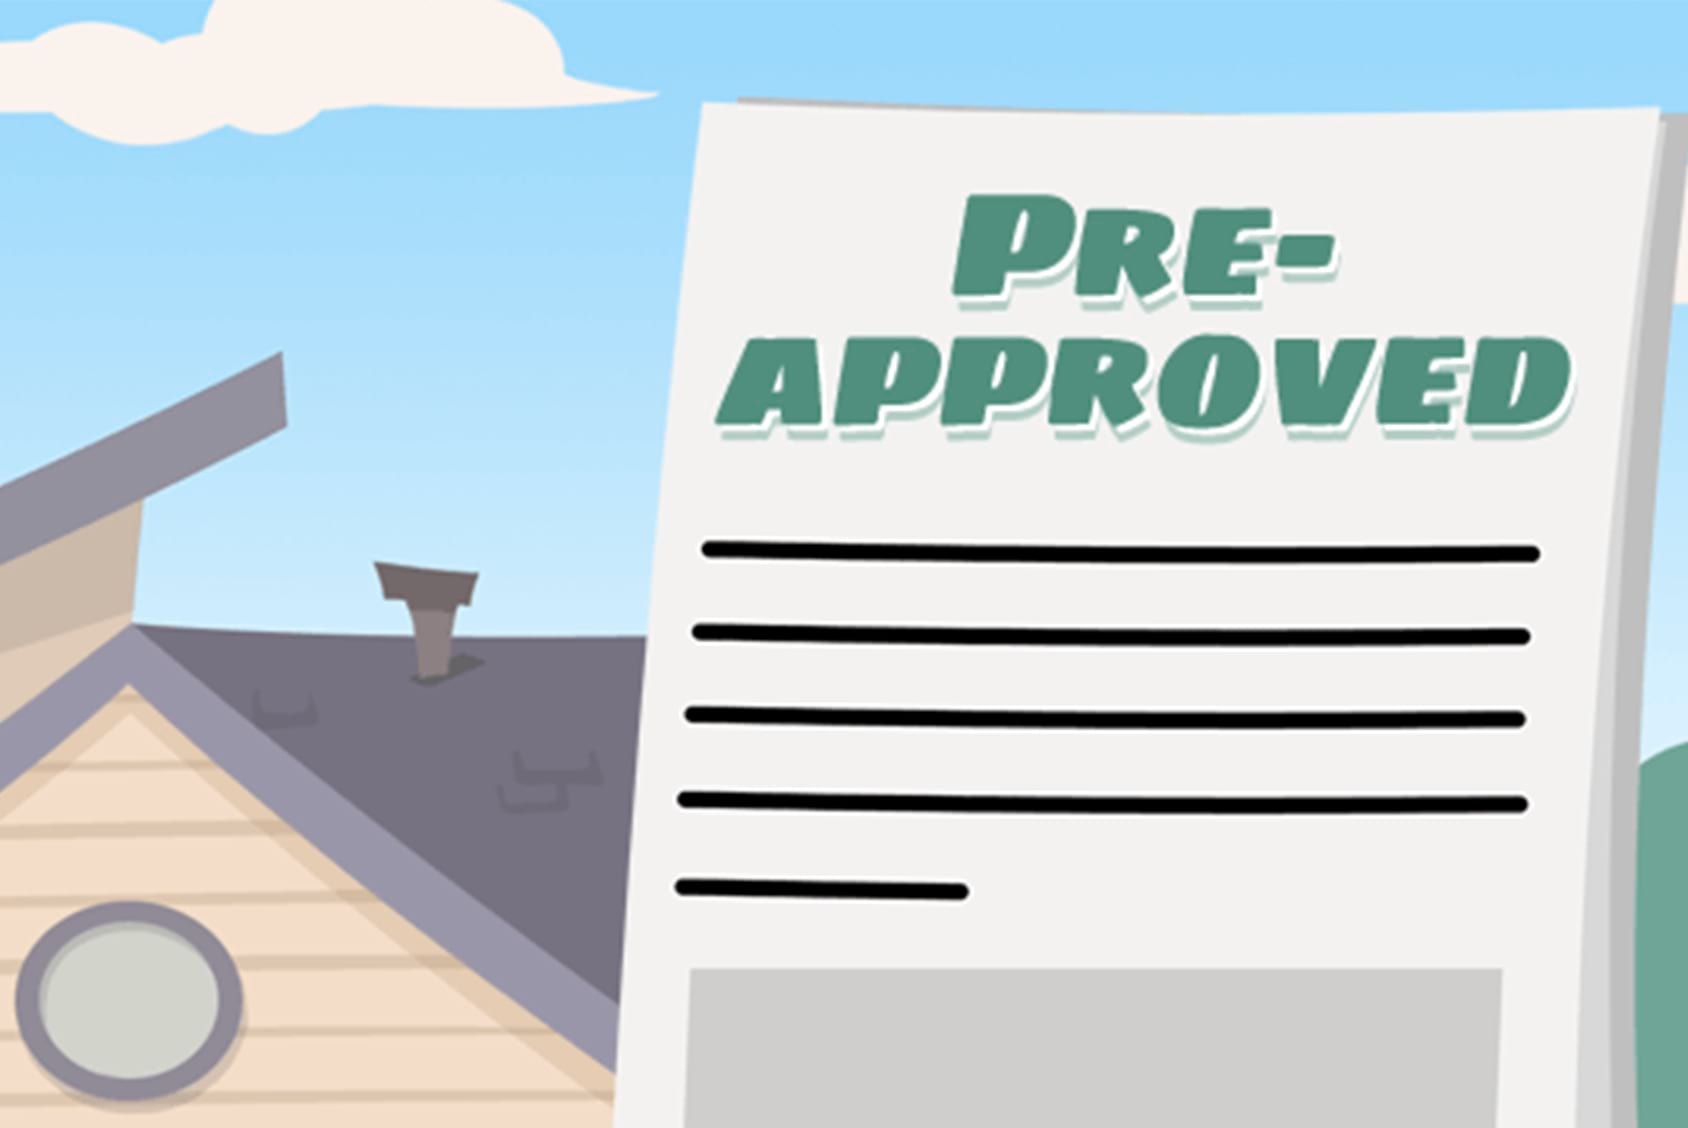 Pre-approved